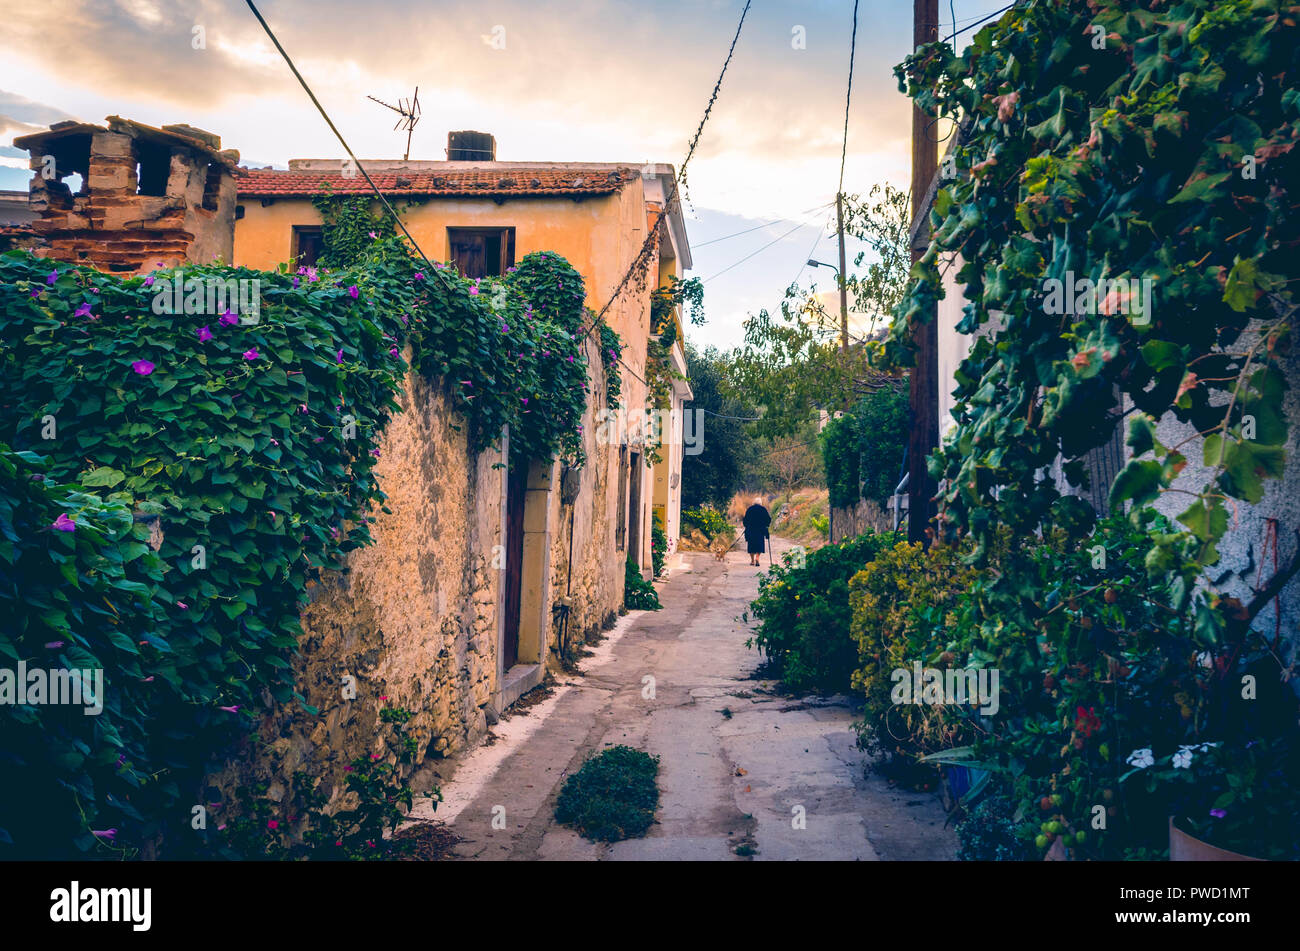 beautiful view in vintage style of narrow alley with  old house, colorful flowers  and a traditional elderly woman dressed in black in a village in cr Stock Photo